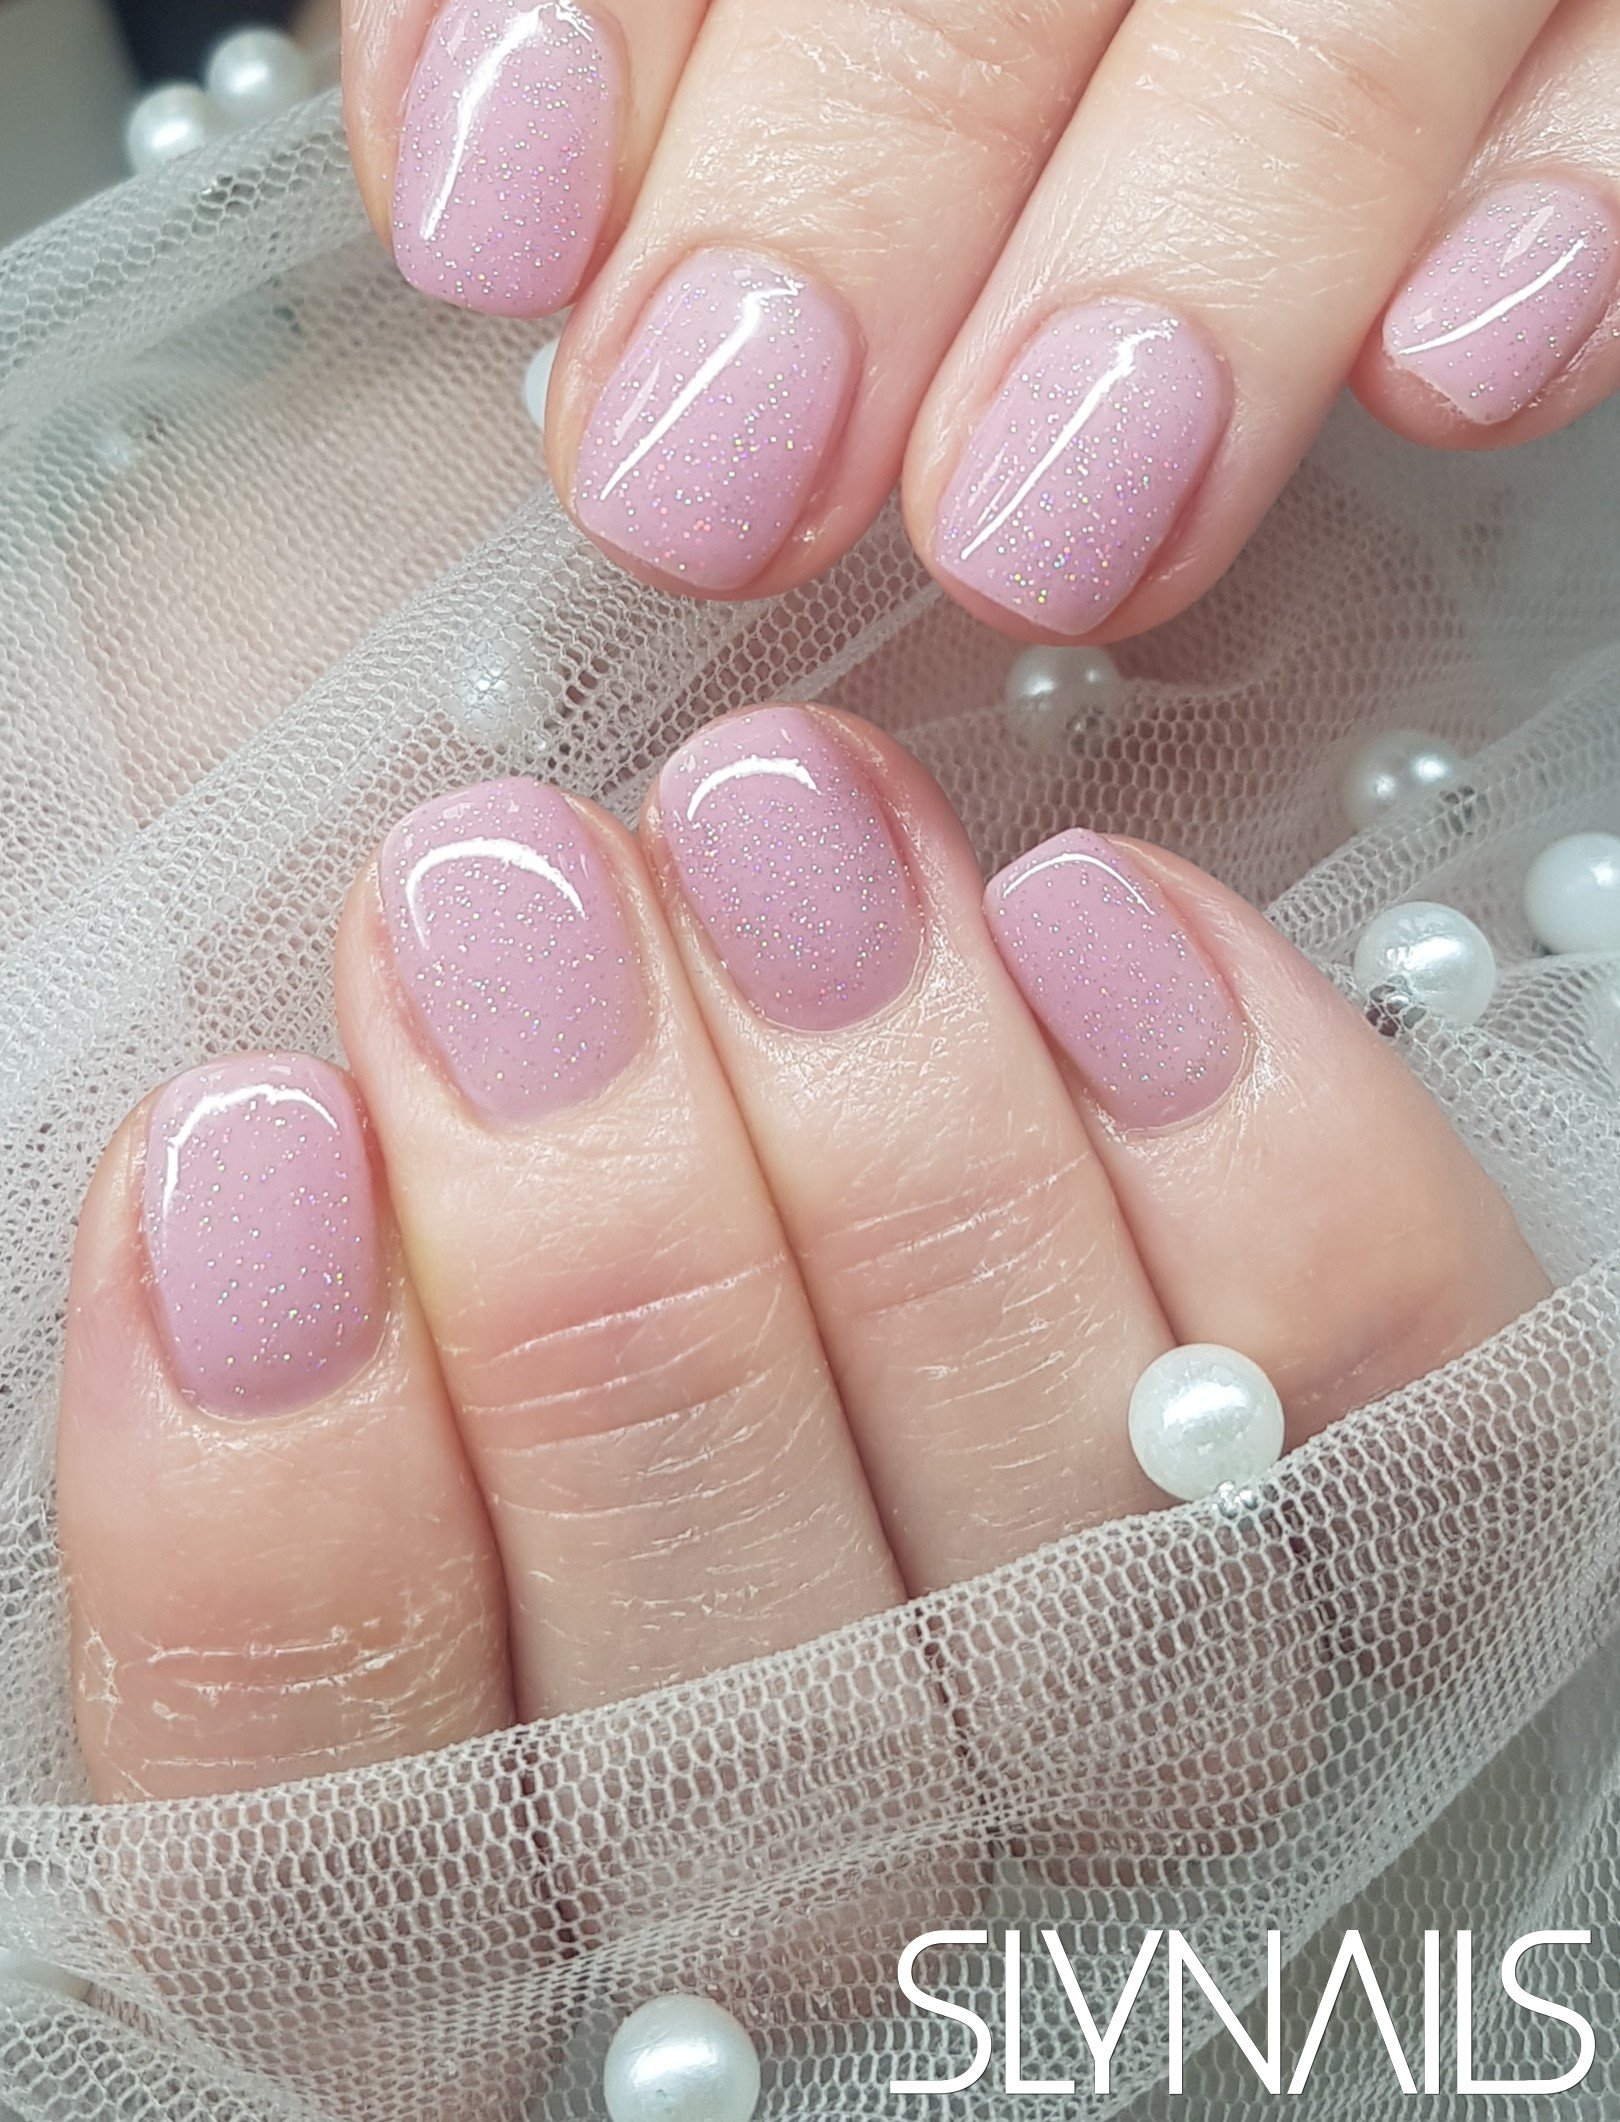 Gel-lac (gel polish), Nude, Square, One color, Without decoration